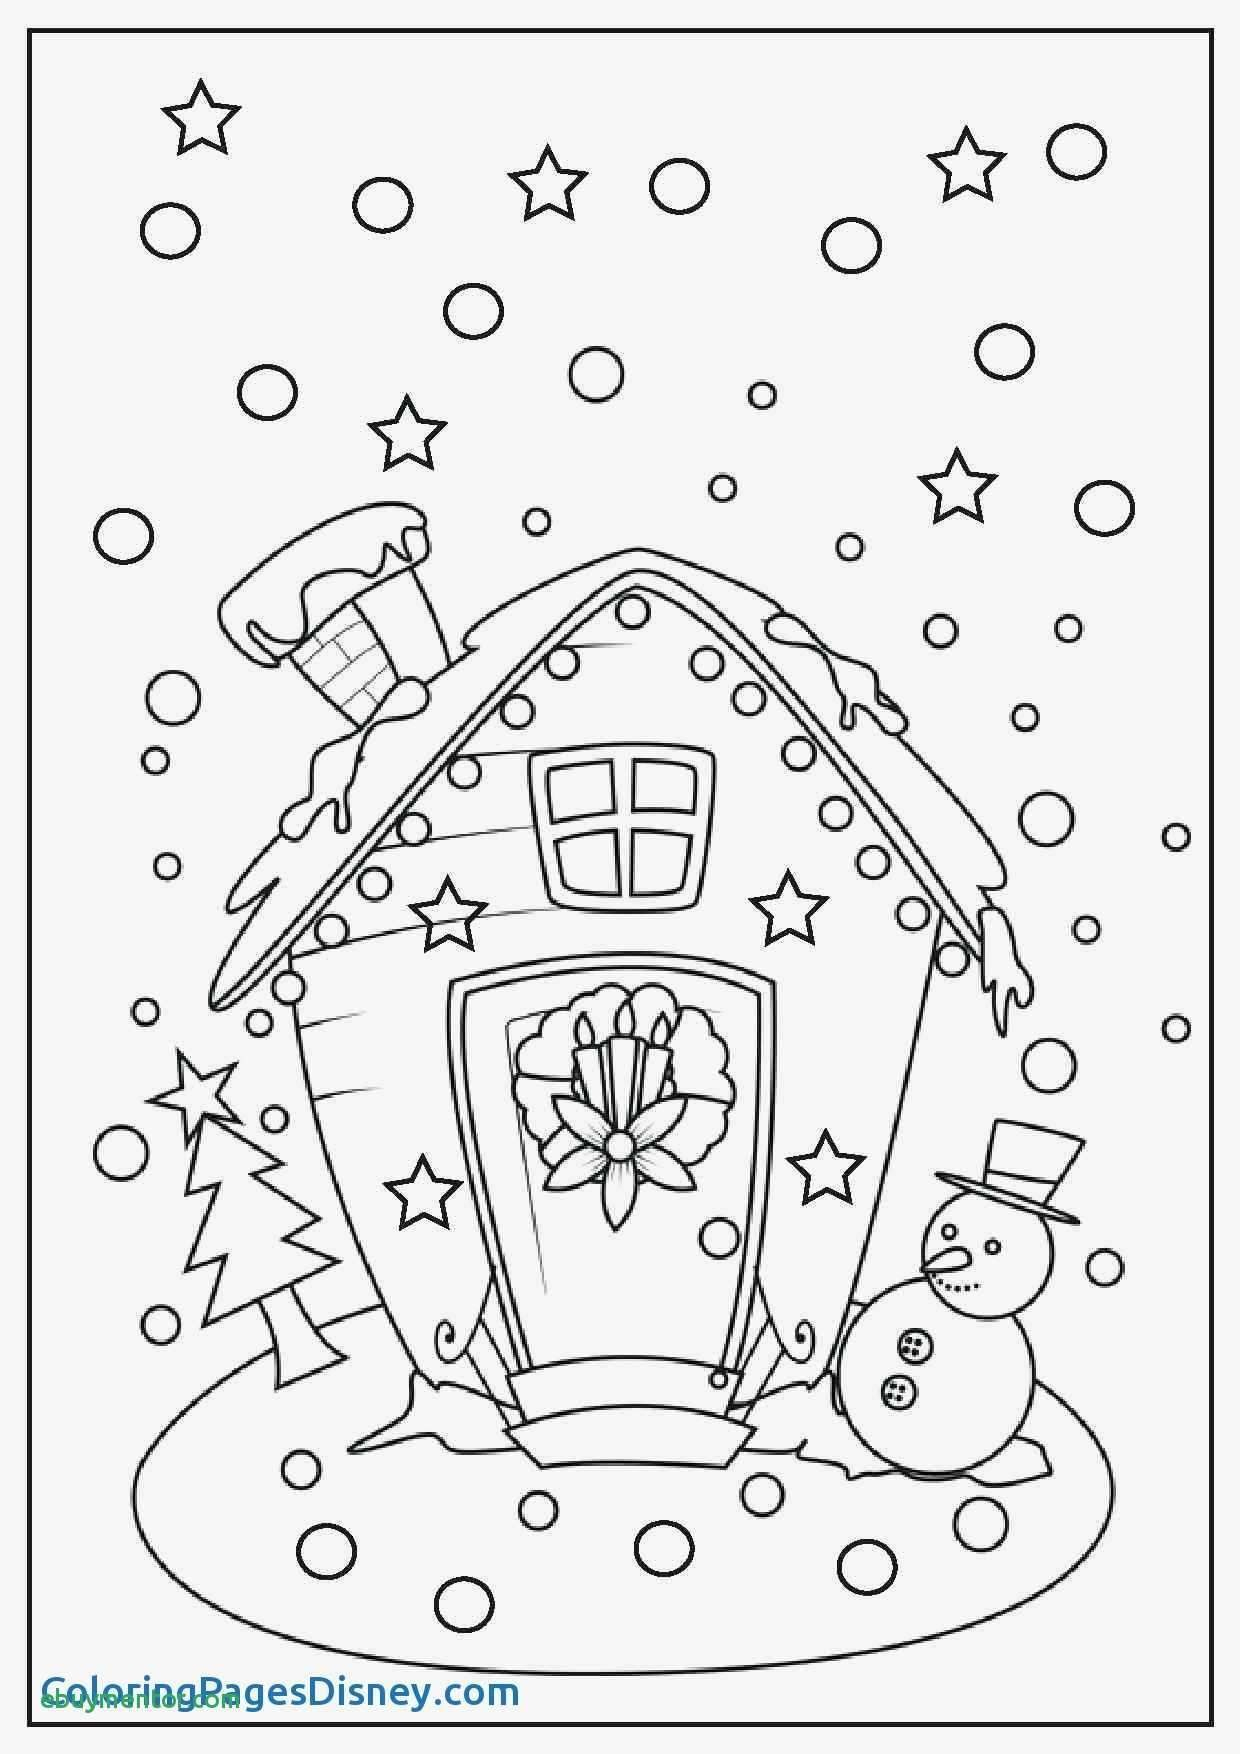 horse coloring pages printable Download-Christmas Coloring In Sheets Christmas Coloring Pages toddlers Cool Coloring Printables 0d – Fun 13-o